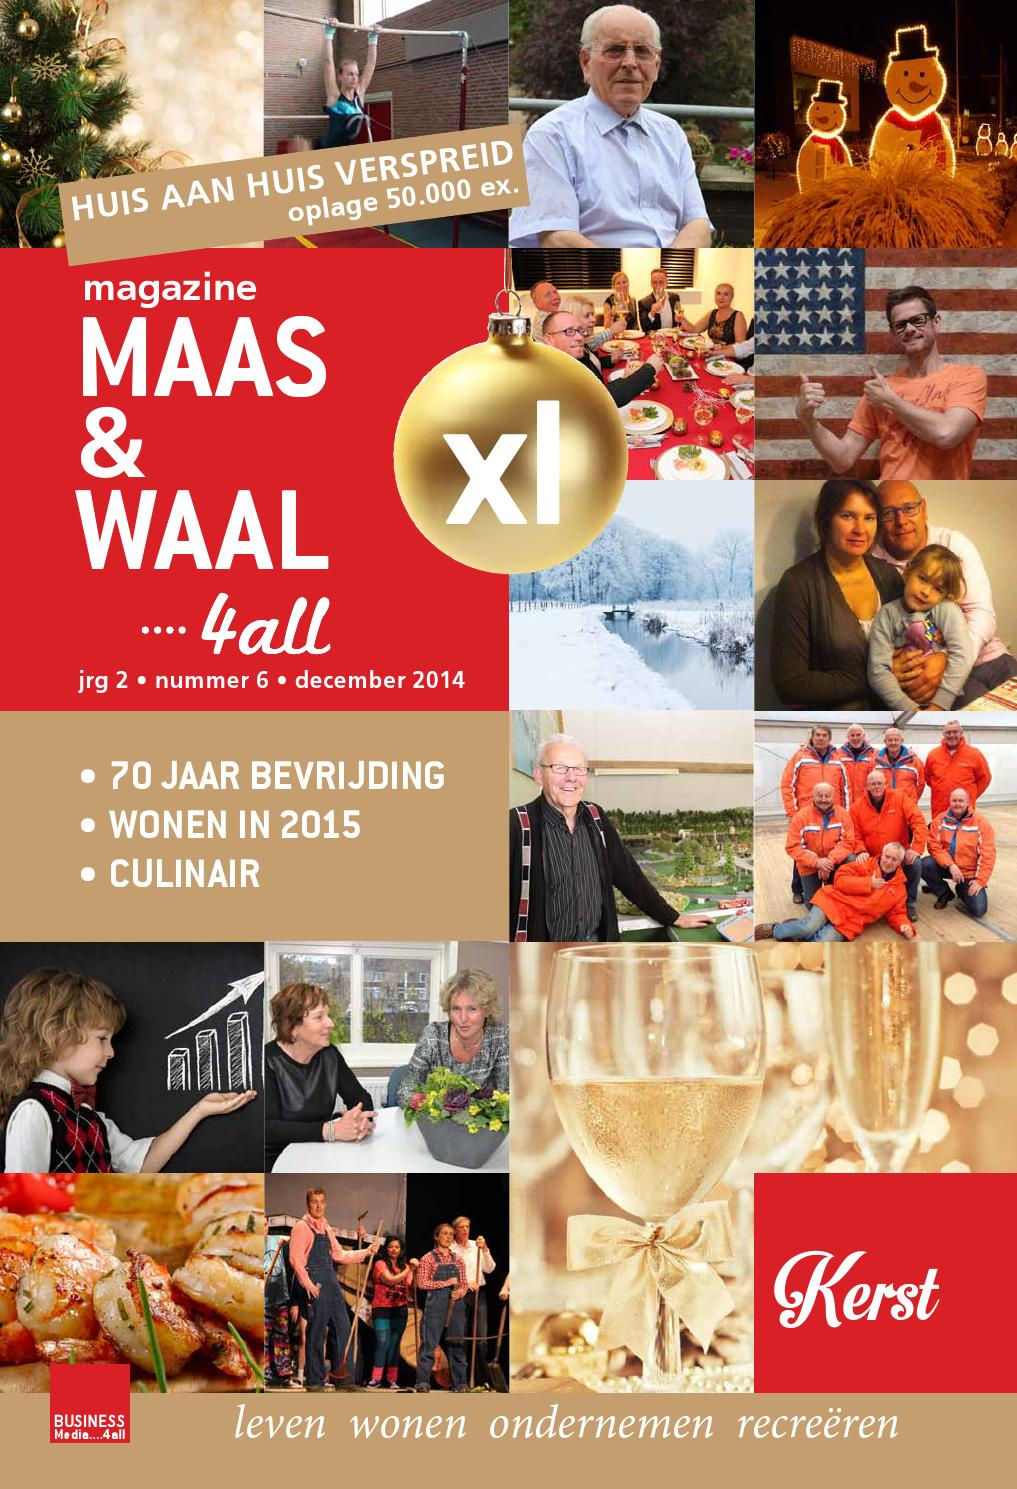 Tiel XL- Rivierenland4all Maart 2015 by Business Media....4All - issuu